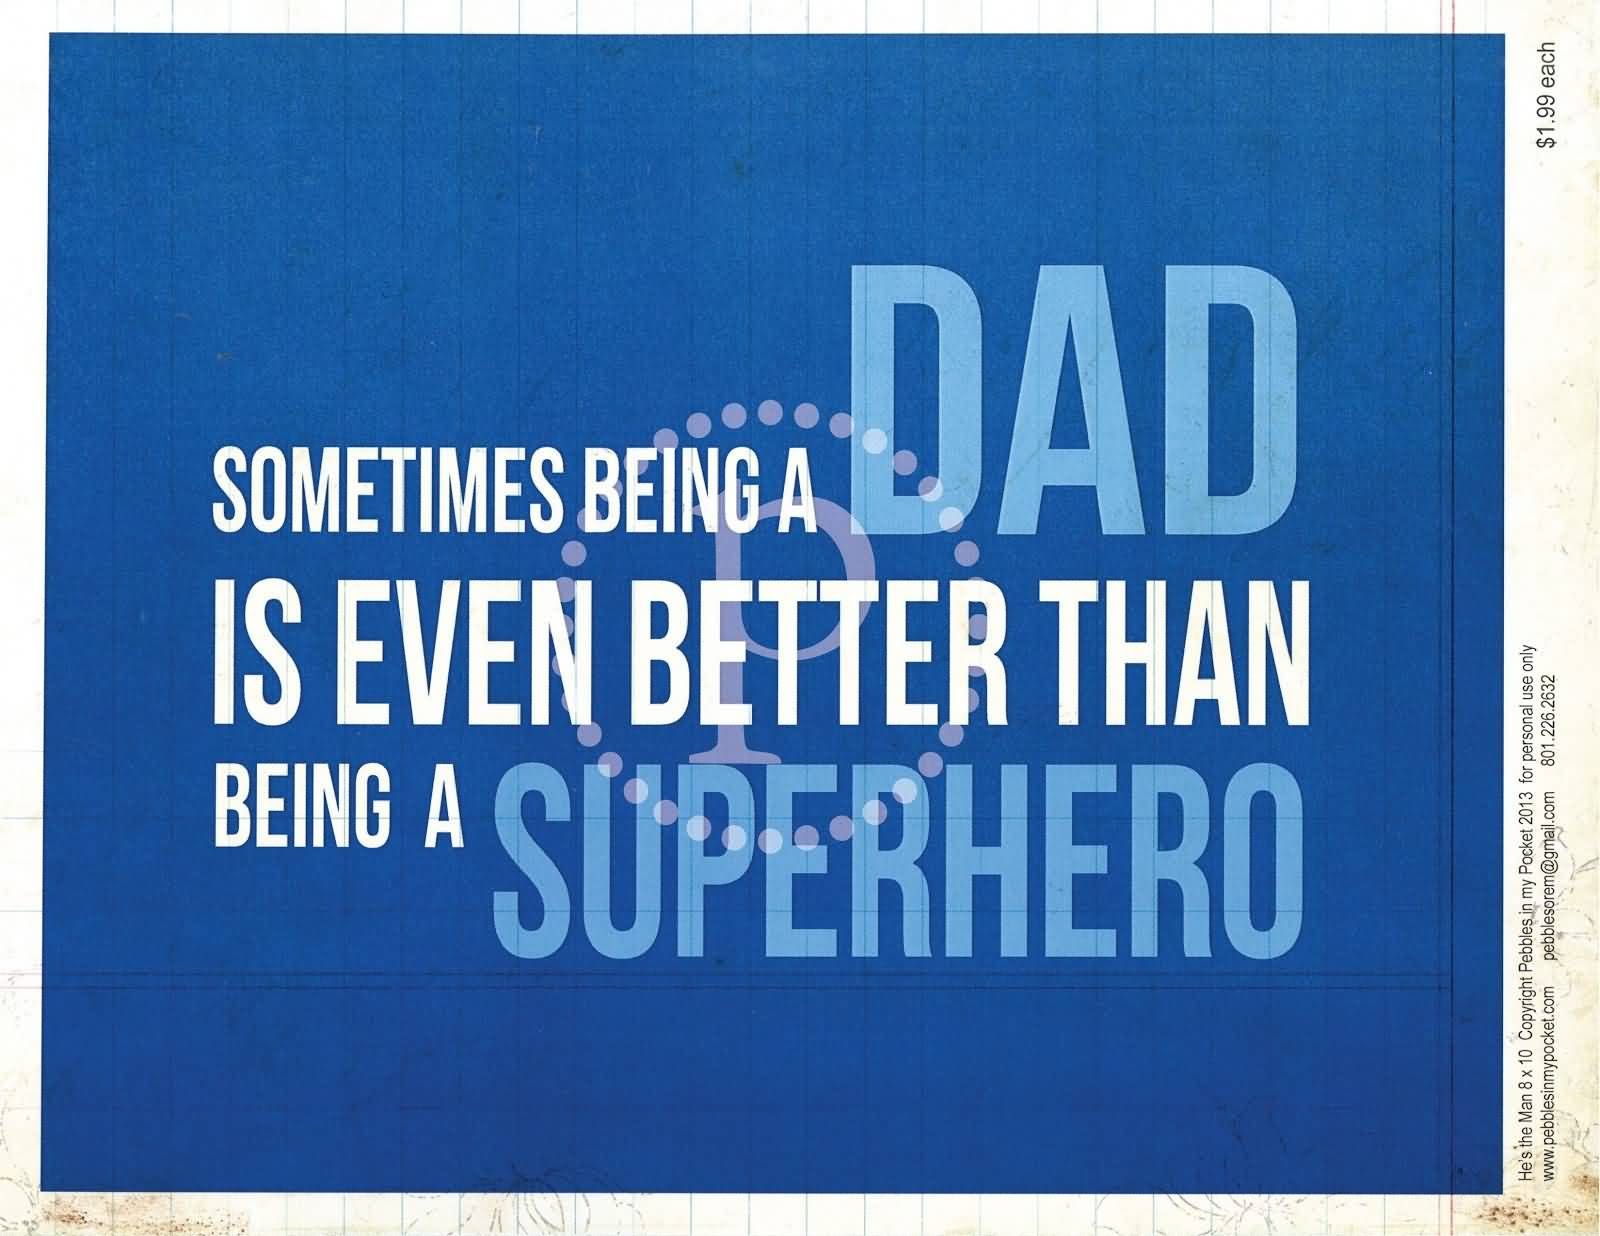 Single Dad Quotes And Sayings Meme Image 12 Quotesbae